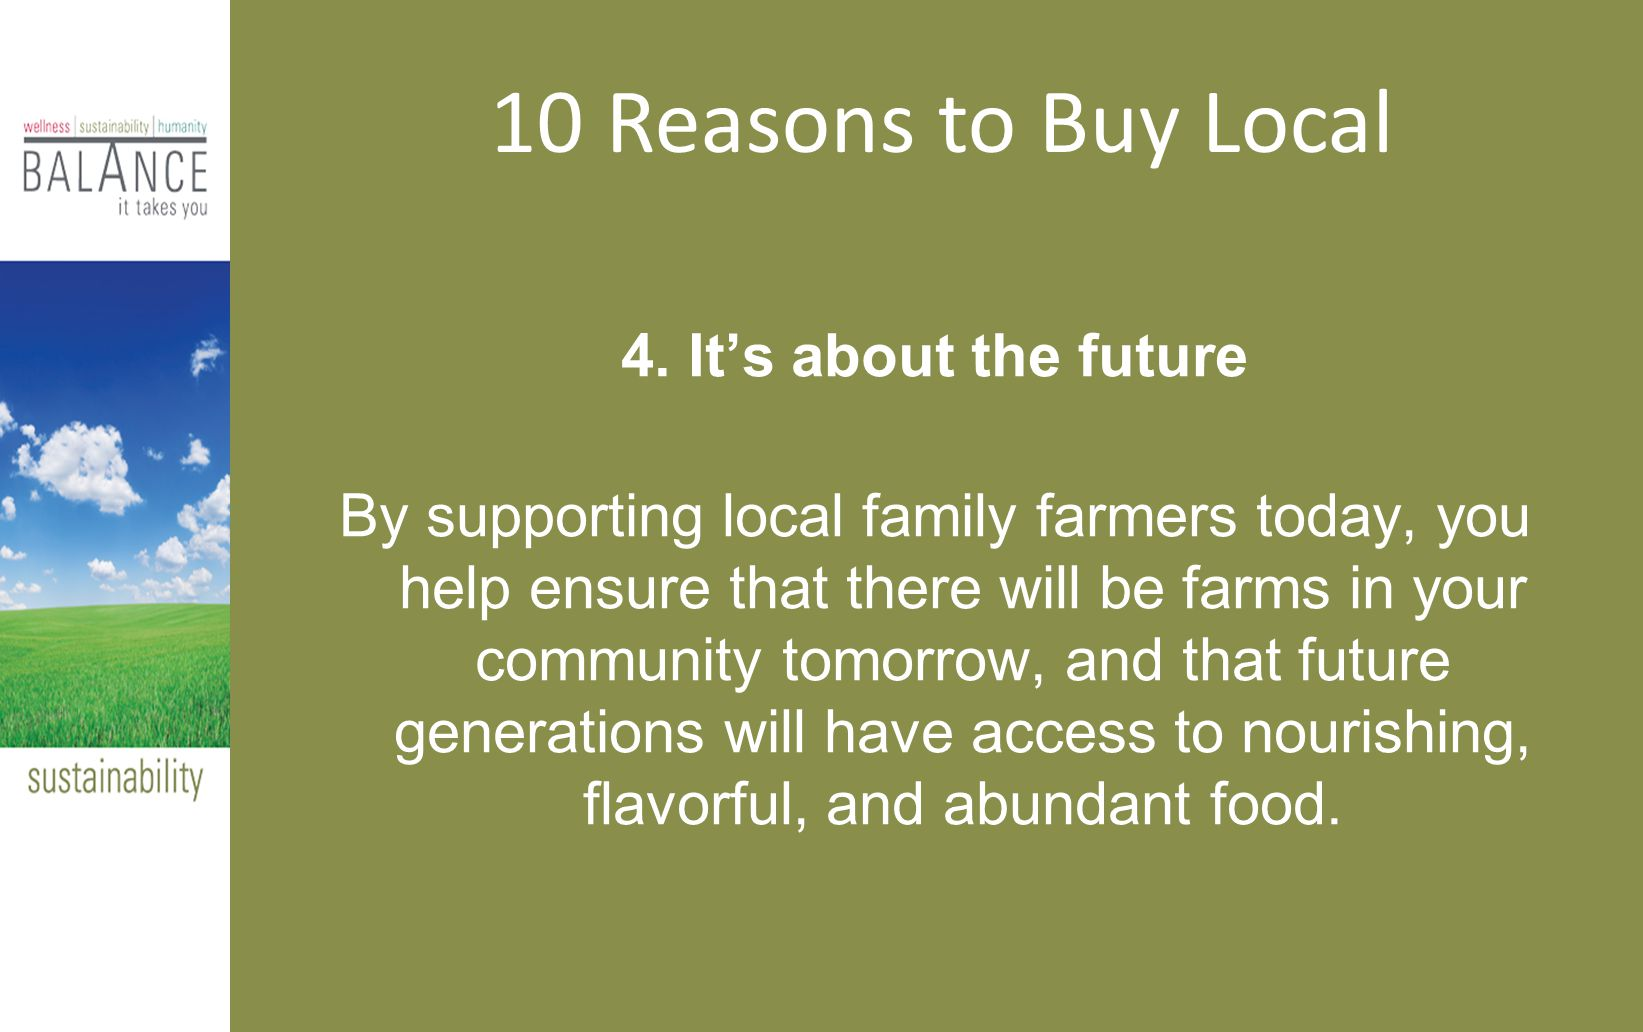 4. It's about the future By supporting local family farmers today, you help ensure that there will be farms in your community tomorrow, and that futur